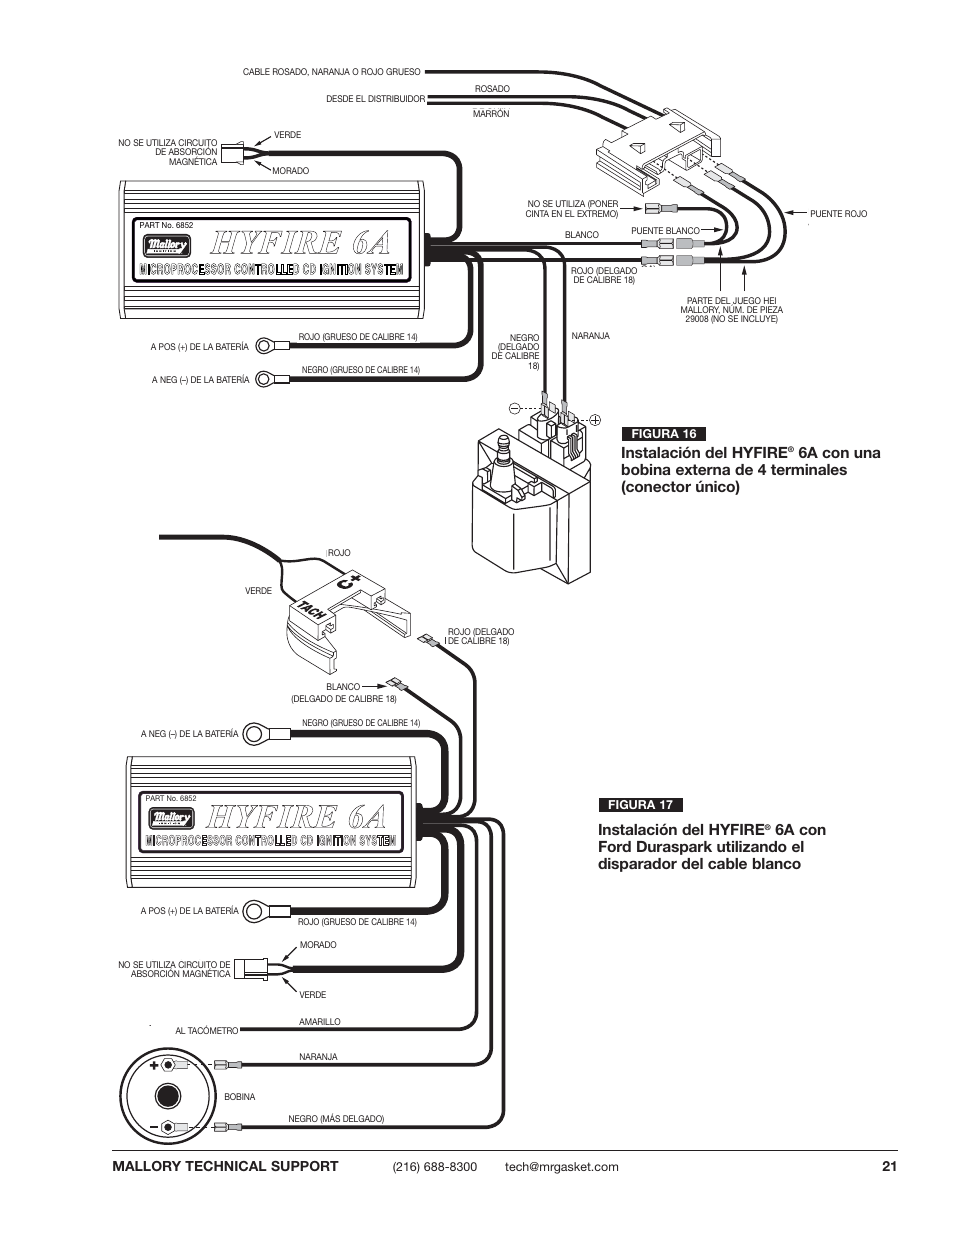 Mallory Hyfire Wiring Diagram For Cj7 Wiring Diagrams